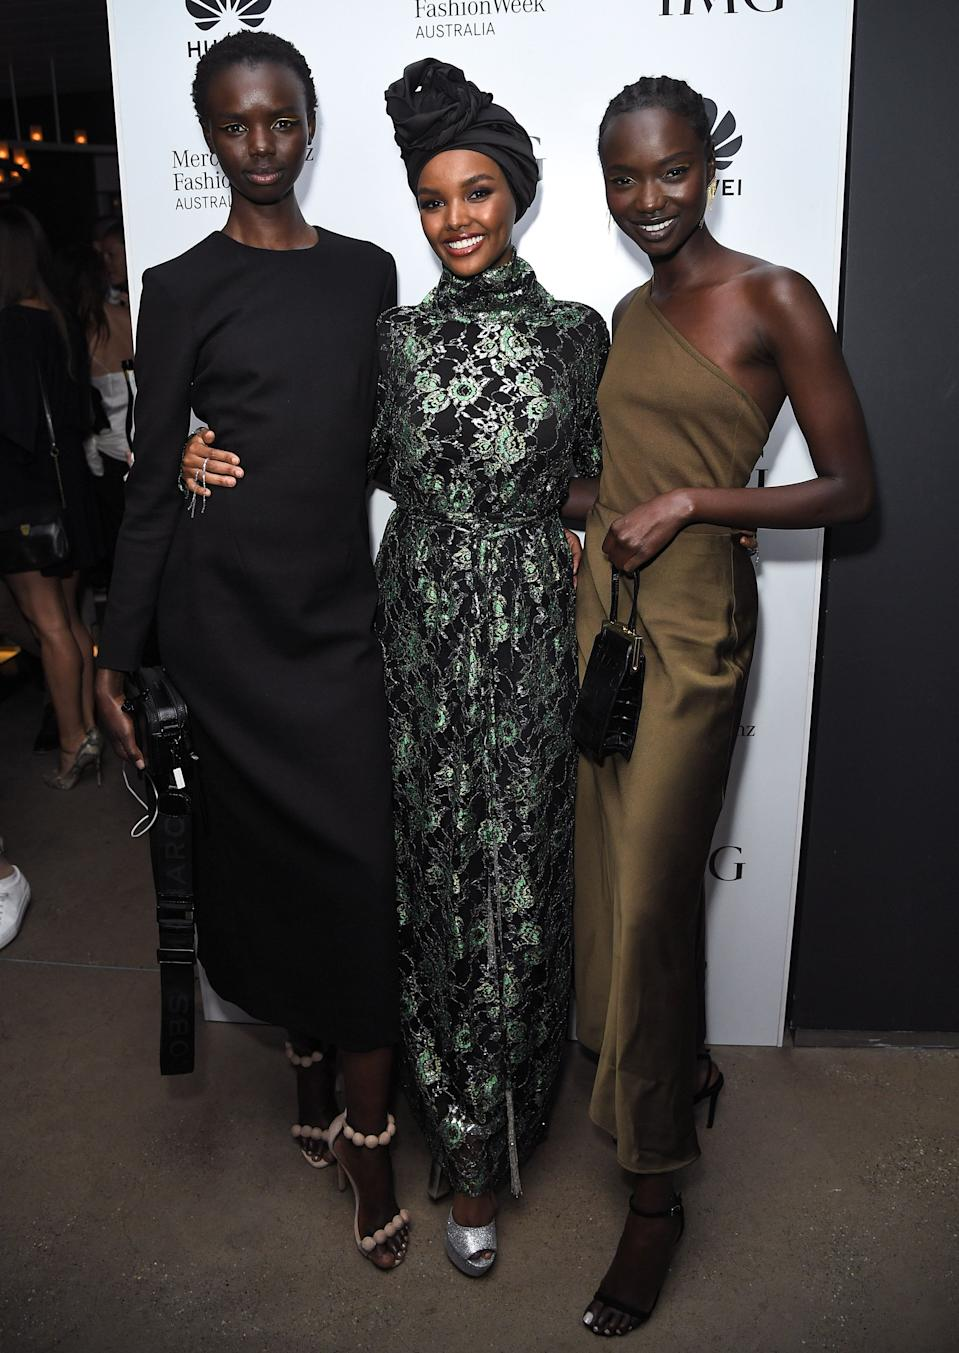 SYDNEY, AUSTRALIA - MAY 16: Halima Aden (centre) attends the Mercedes-Benz Fashion Week Australia official closing party on May 16, 2019 in Sydney, Australia. (Photo by James Gourley/Getty Images)